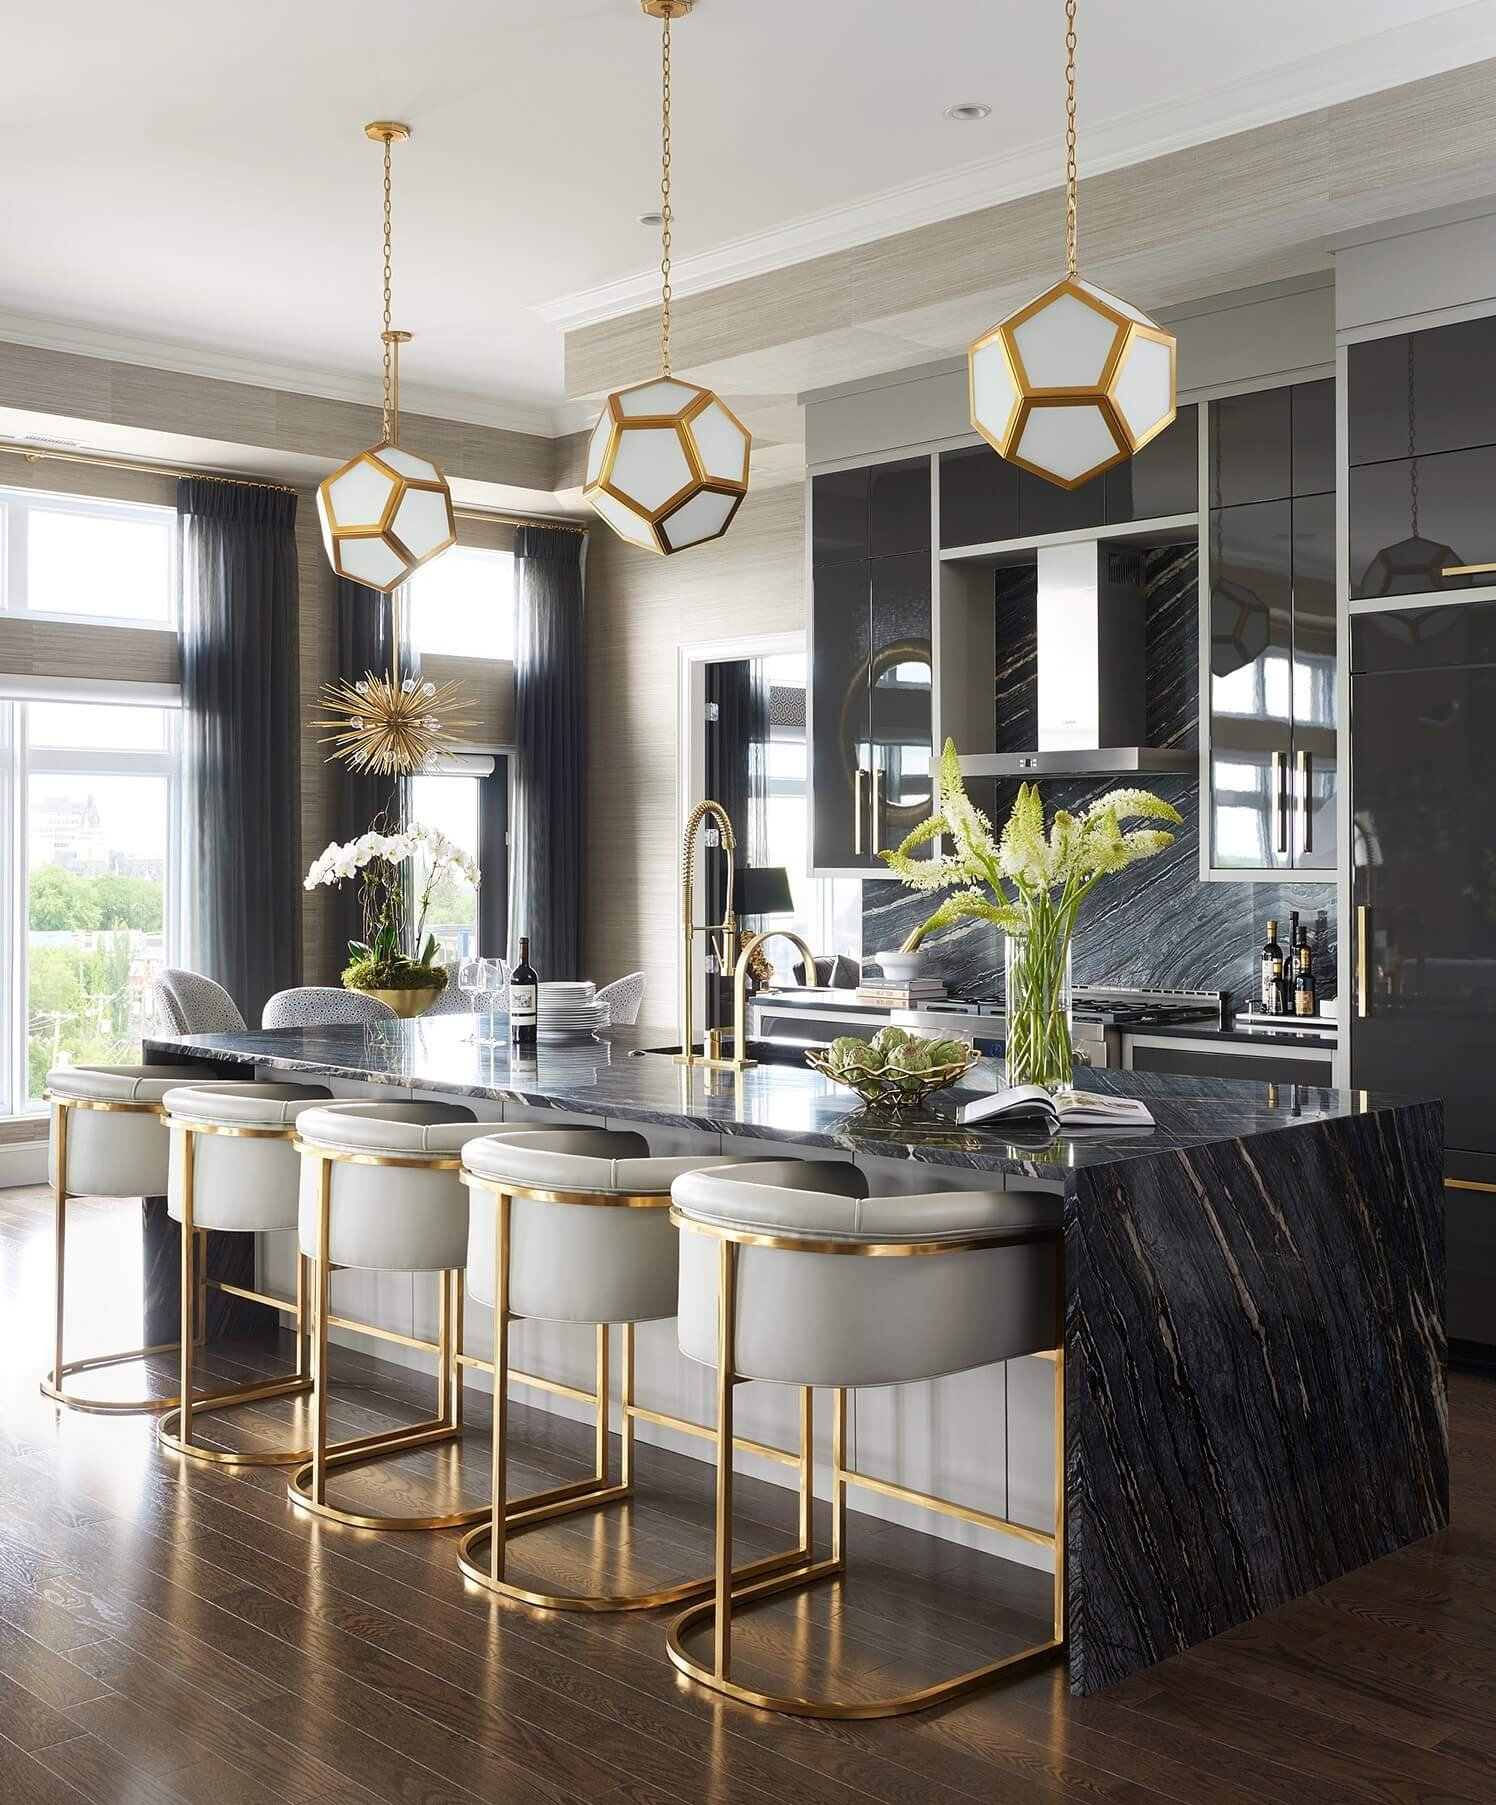 Black and Gold Kitchen Decor Lovely Marble Kitchen who Wore It Better